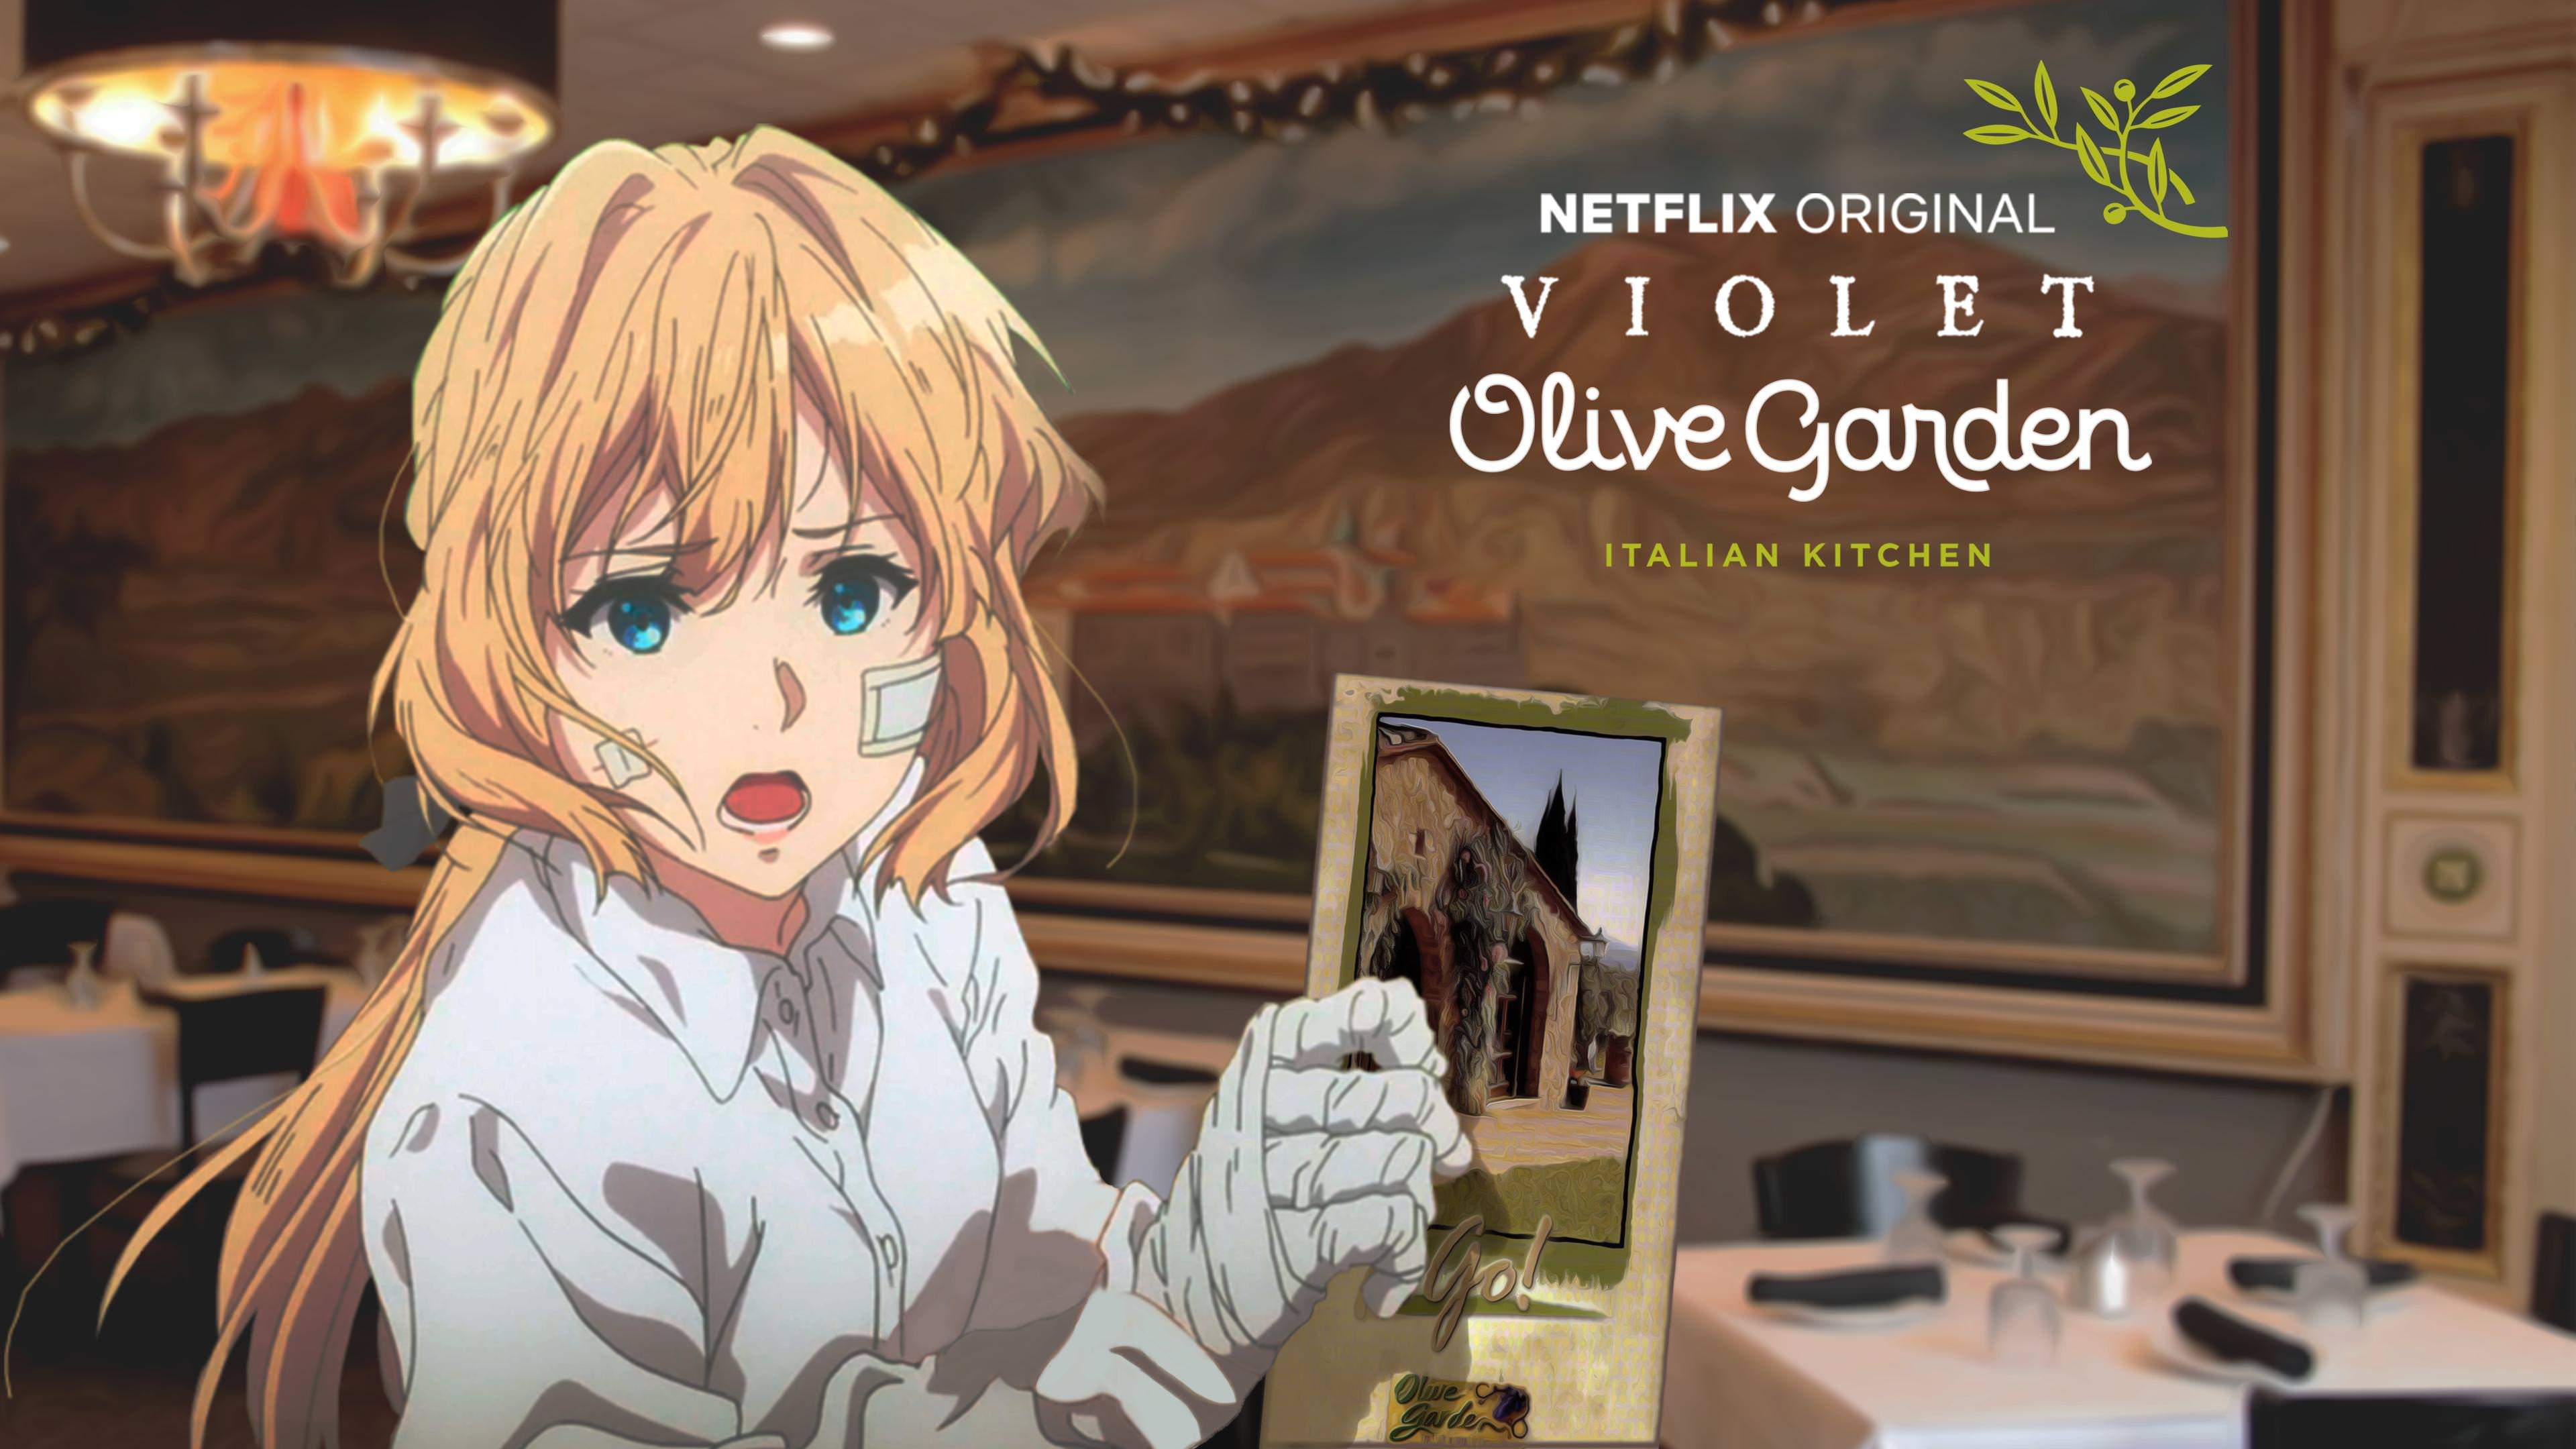 Violet Olive Garden | Violet Evergarden | Know Your Meme